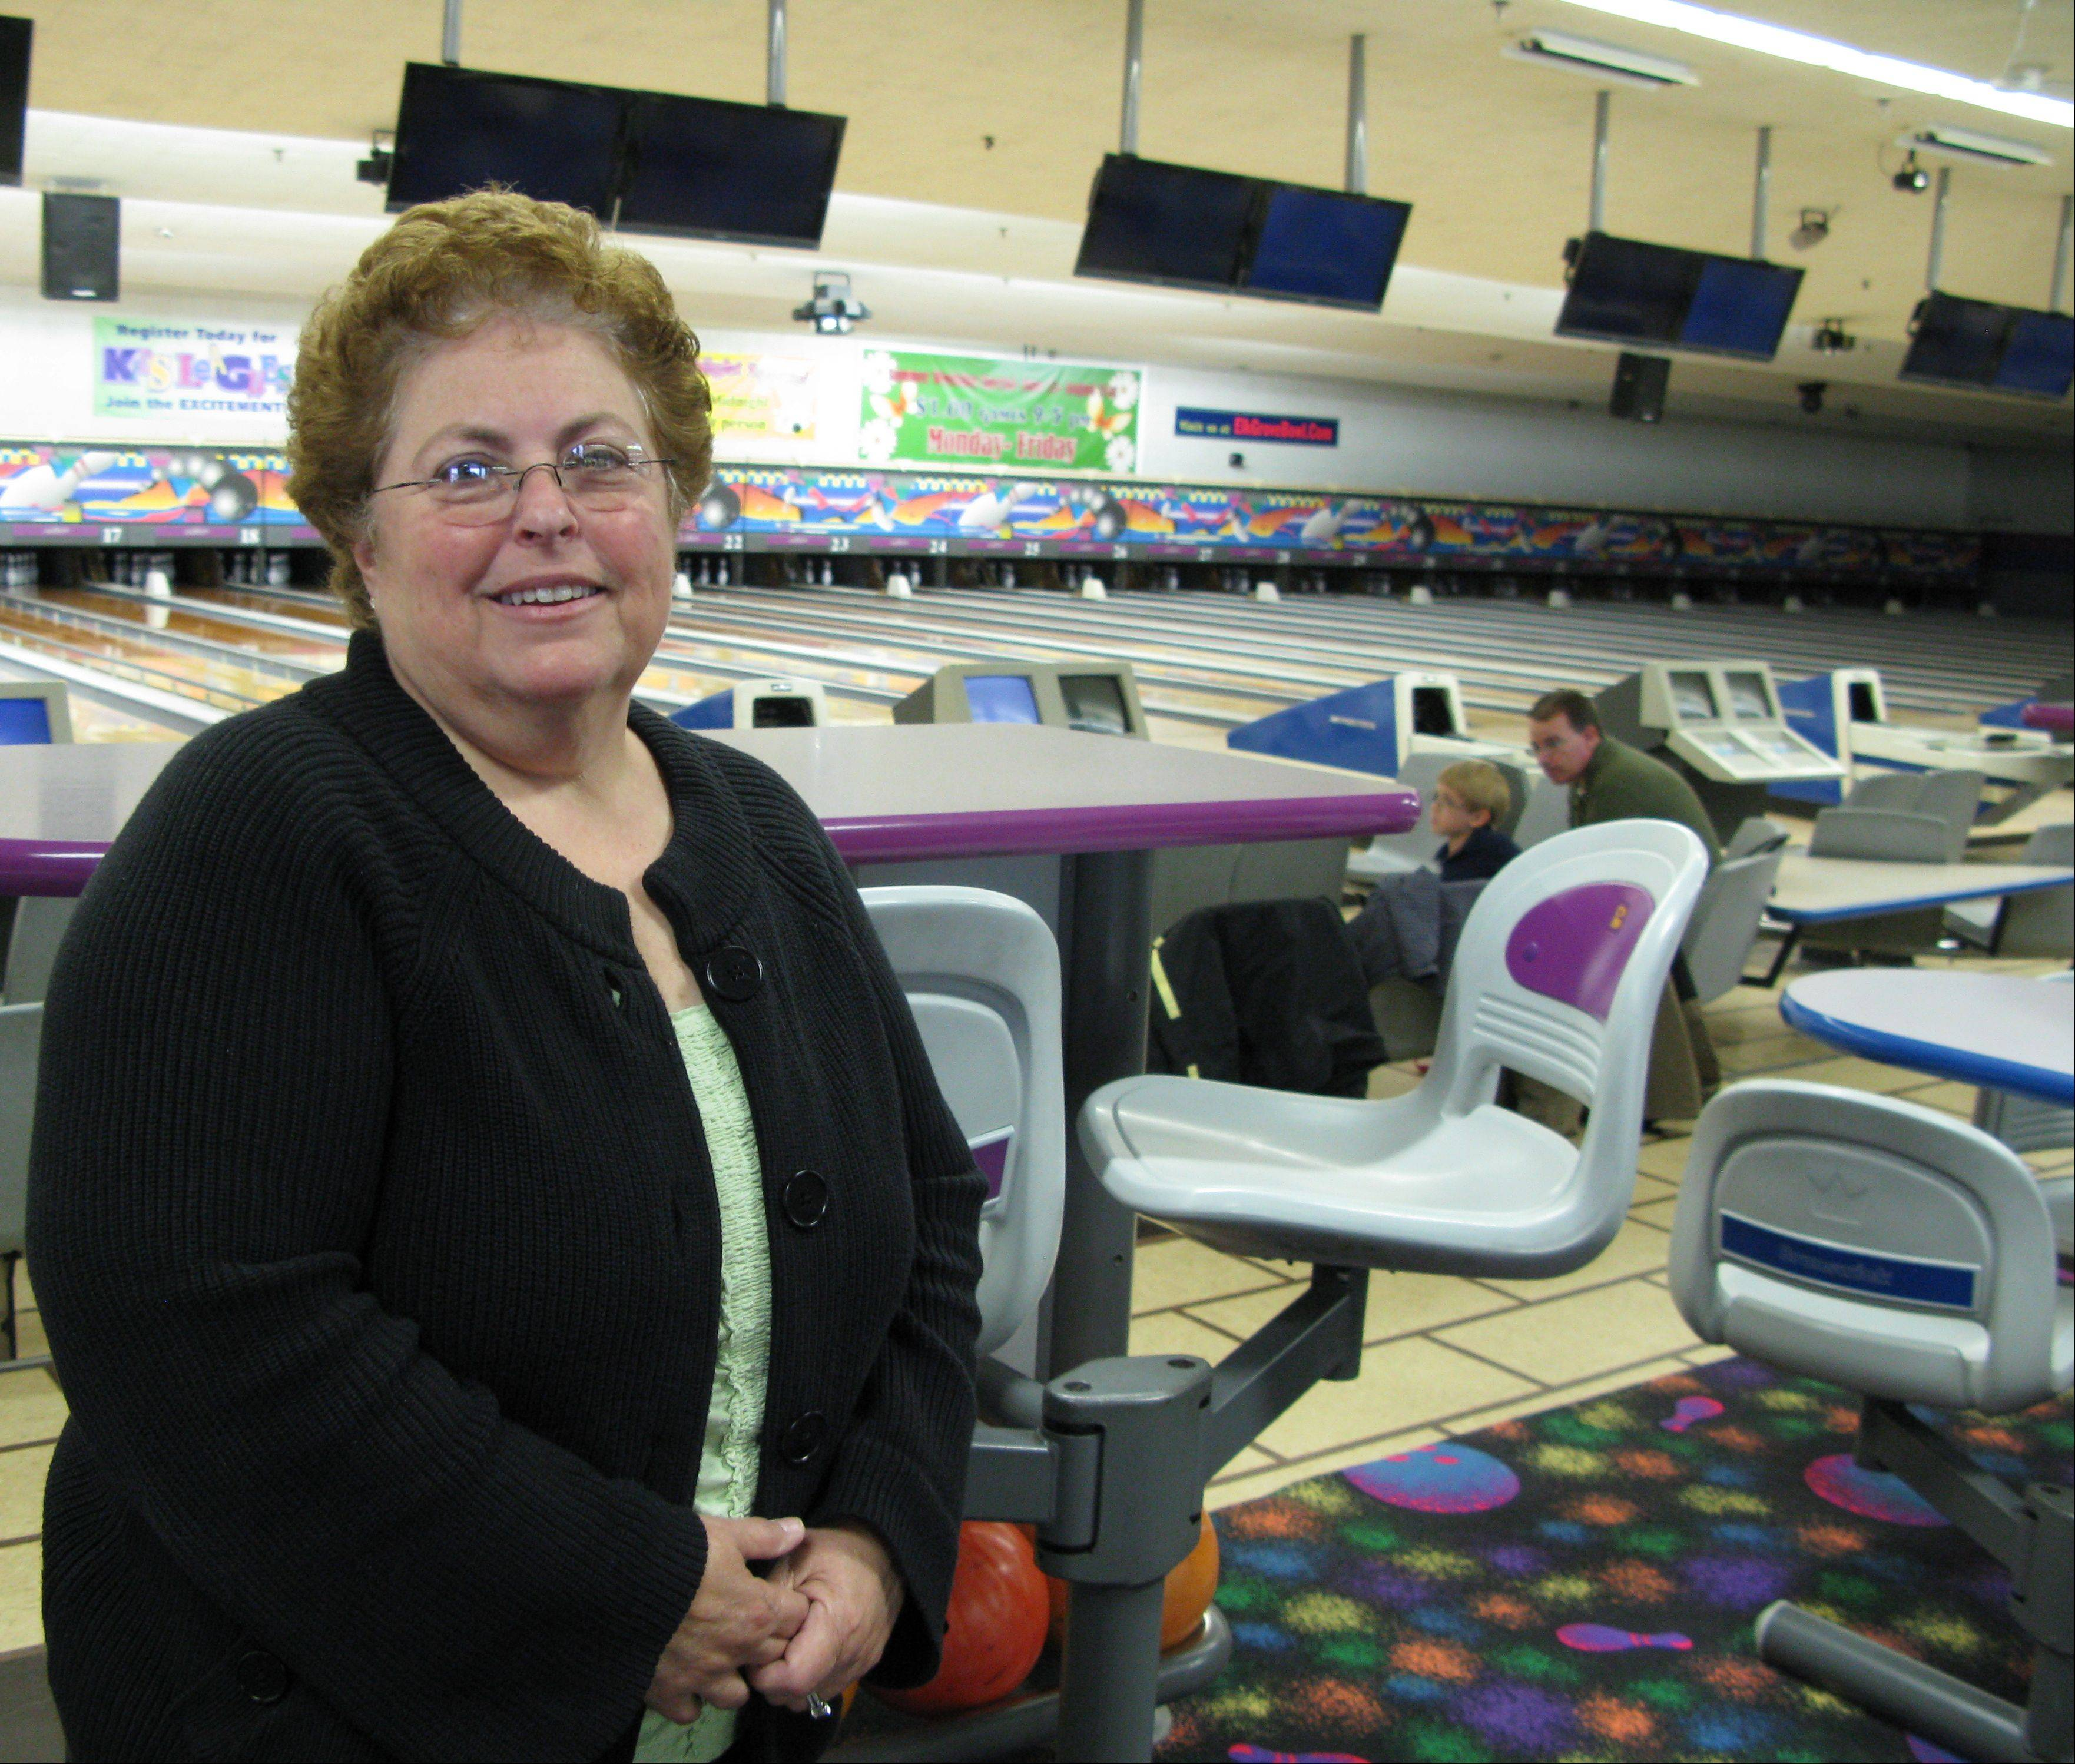 Debbie Handler, who operates the family-owned Elk Grove Bowl, is betting on video gambling to help her business stay afloat. The Elk Grove Village Board is expected to vote on whether to allow video gambling on June 19.